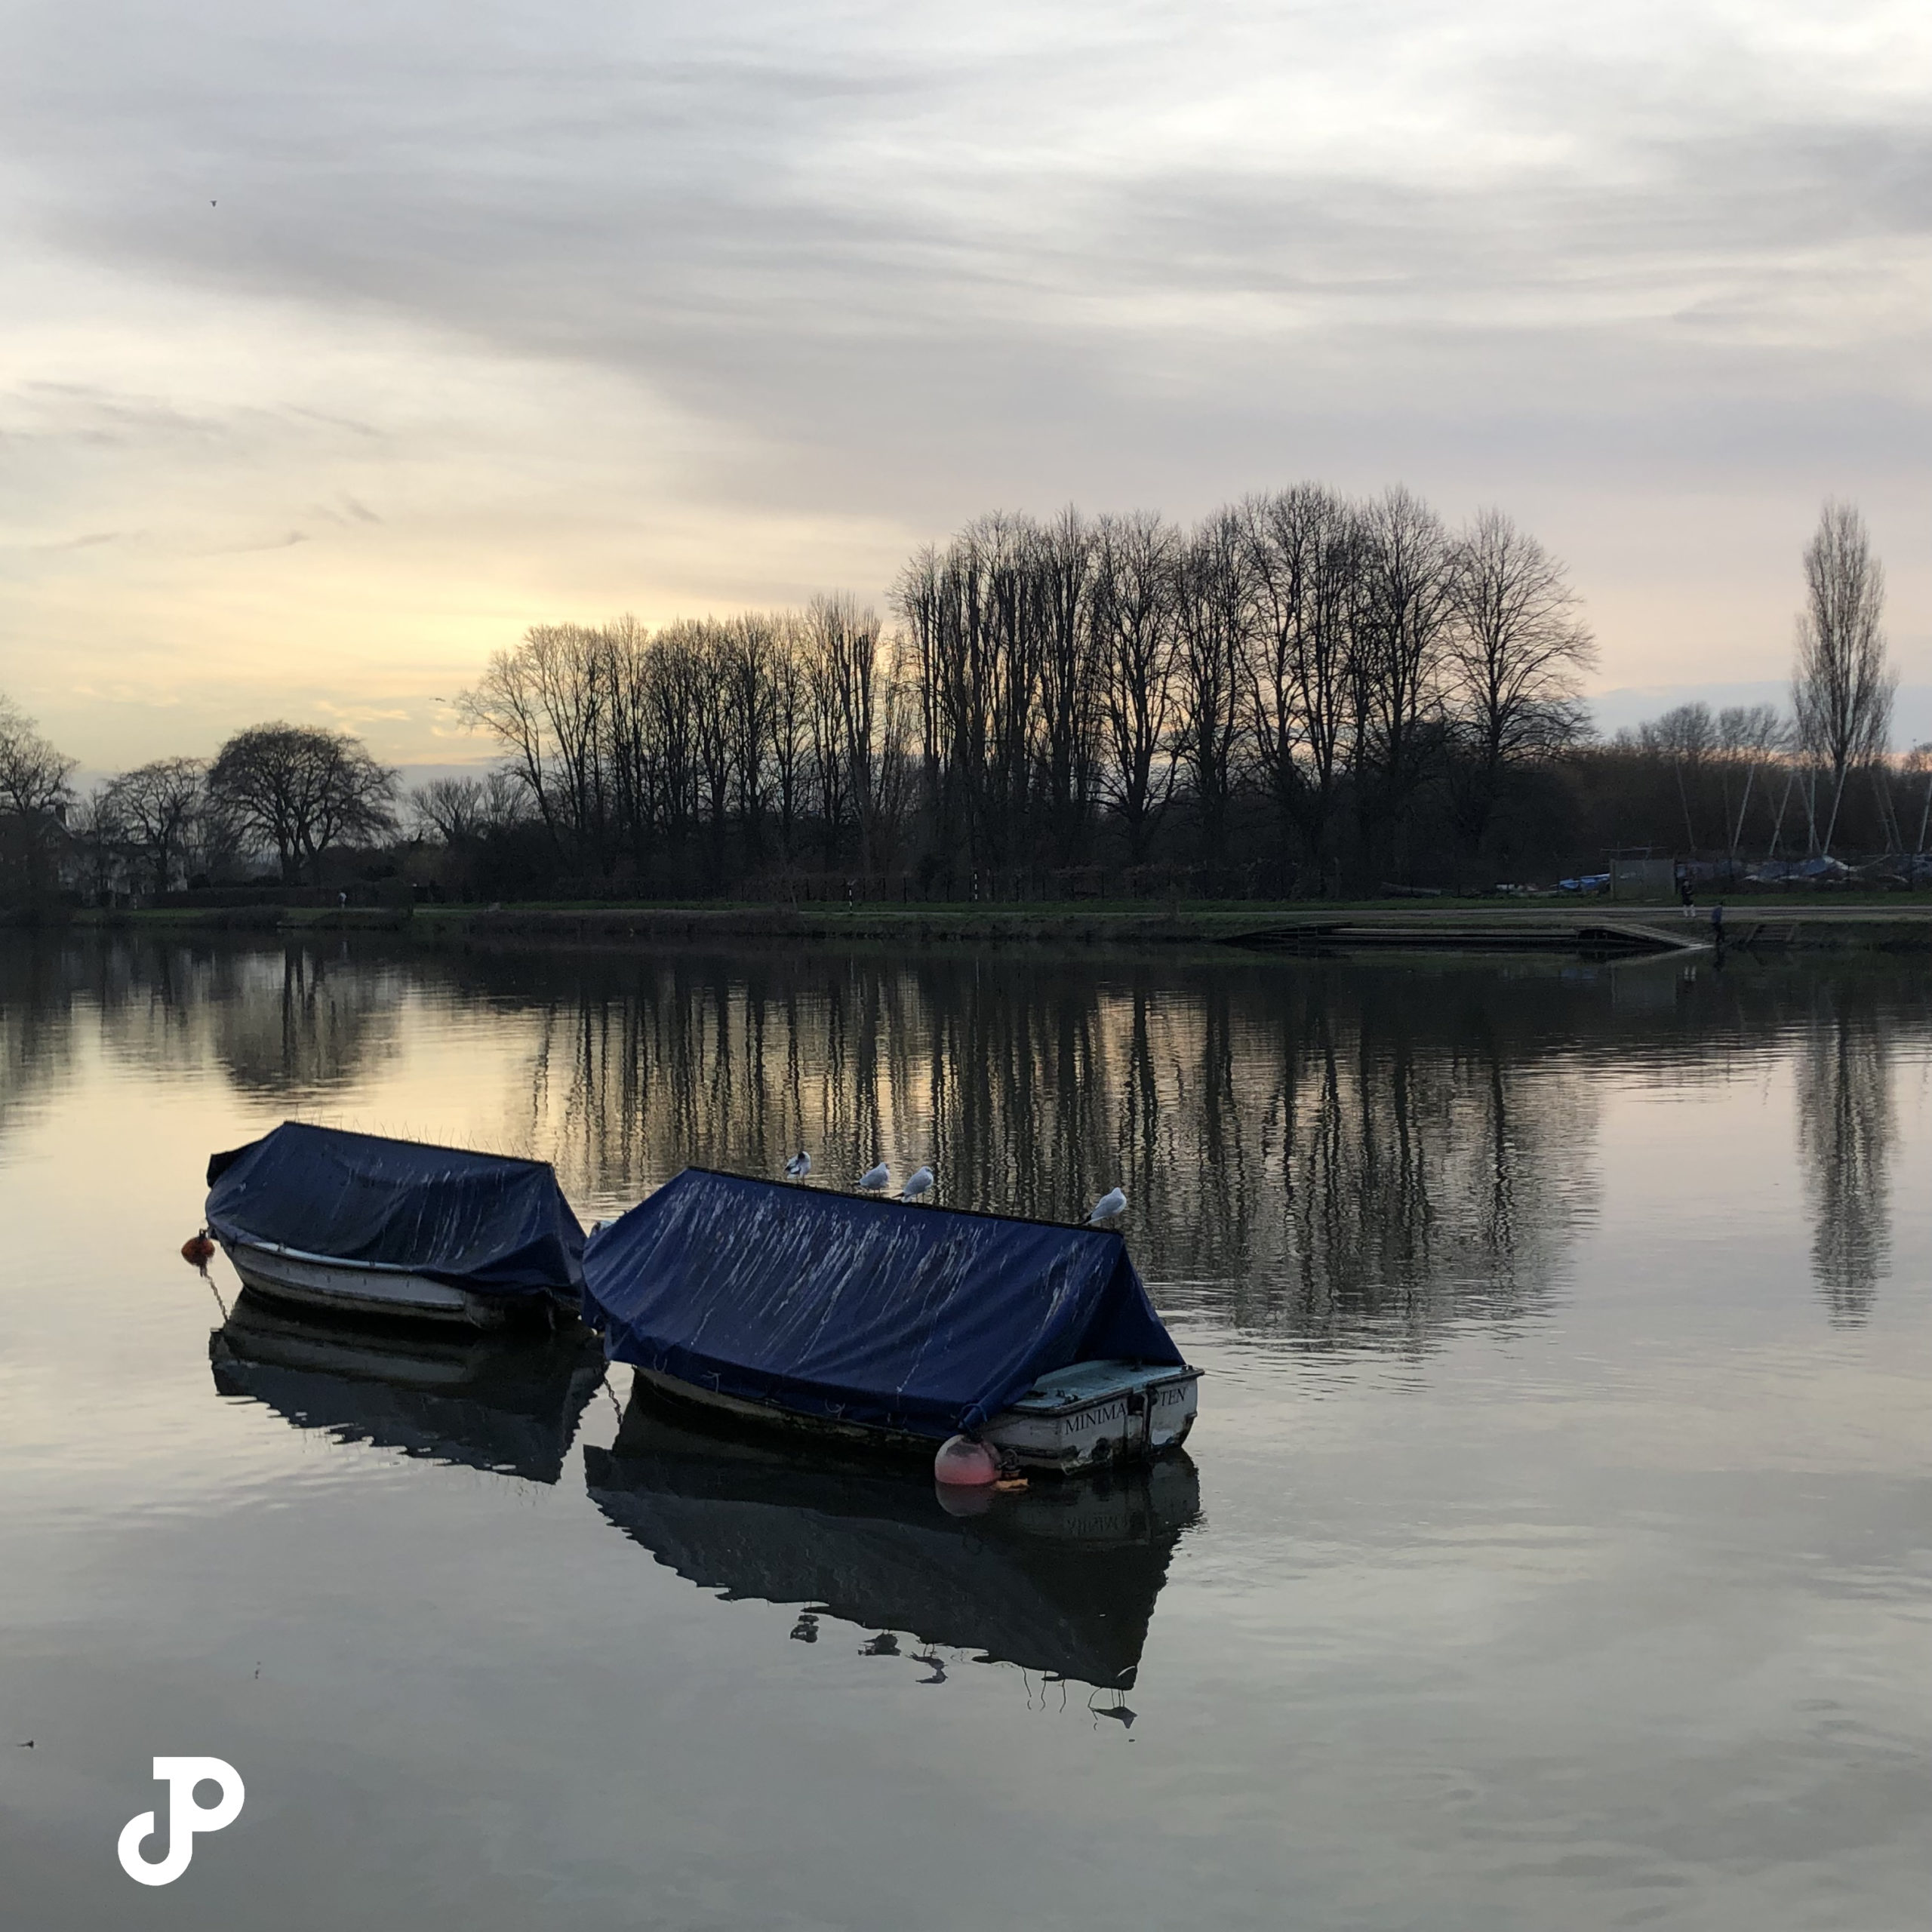 two small boats docked on the River Thames in Kingston Upon Thames